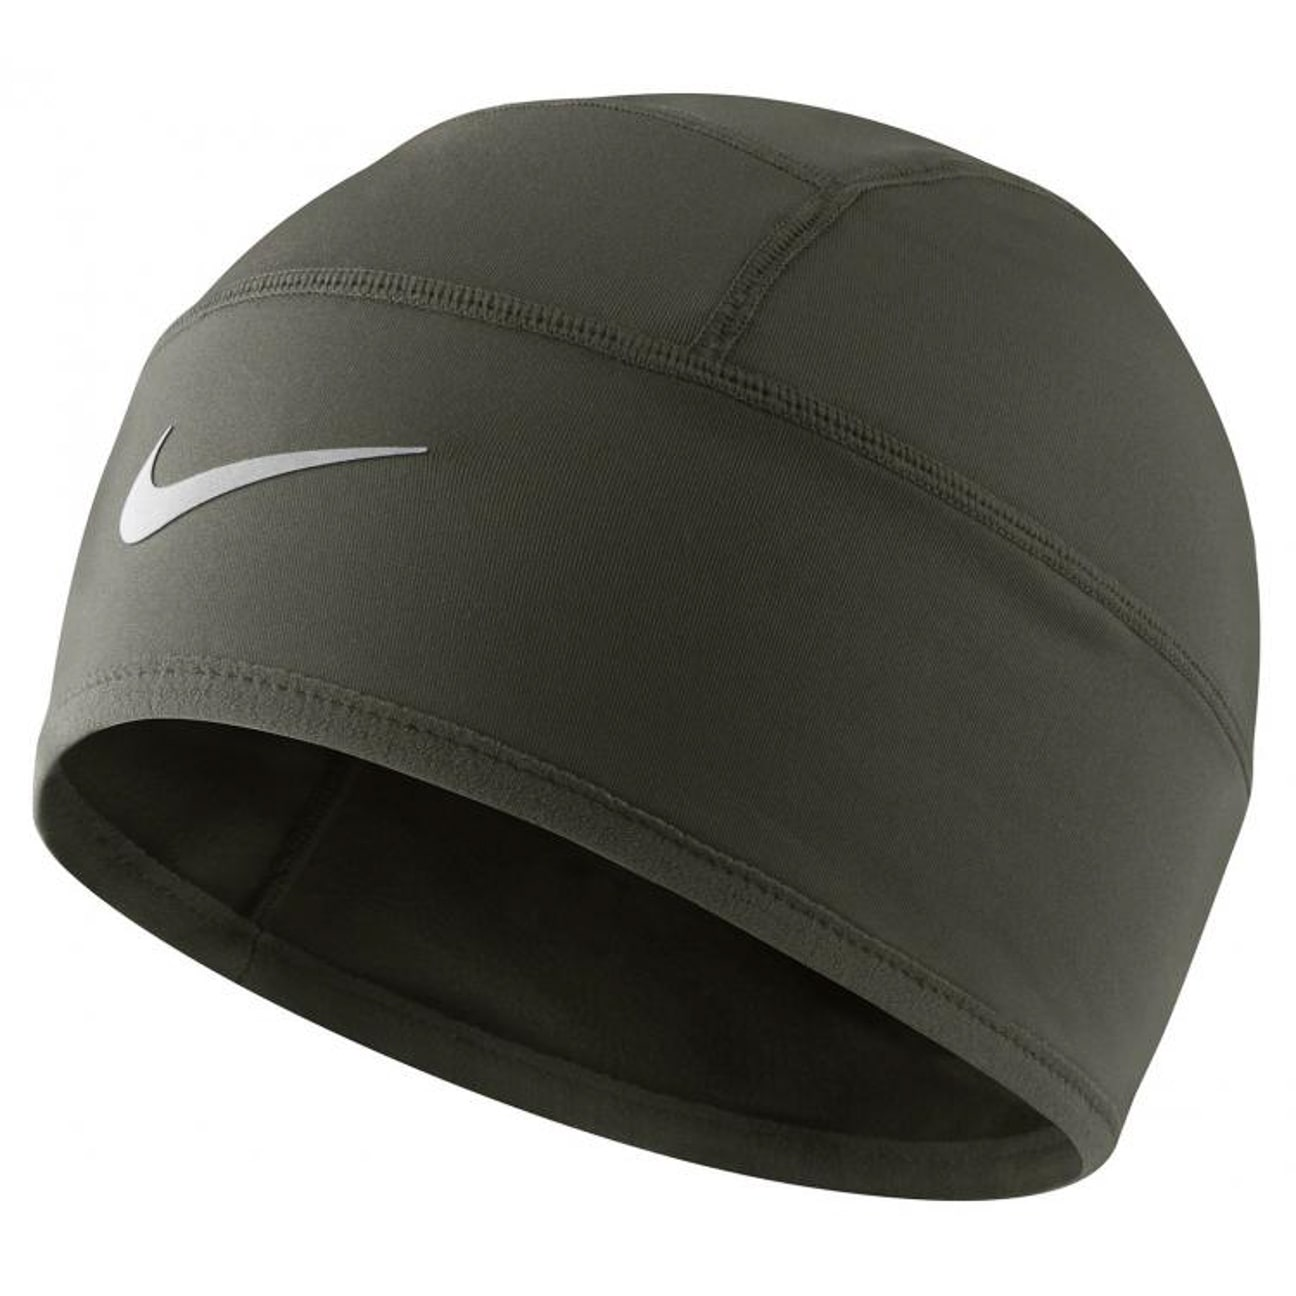 ... Cold Weather Beanie by Nike - olive 1 ... 934b238fdfd